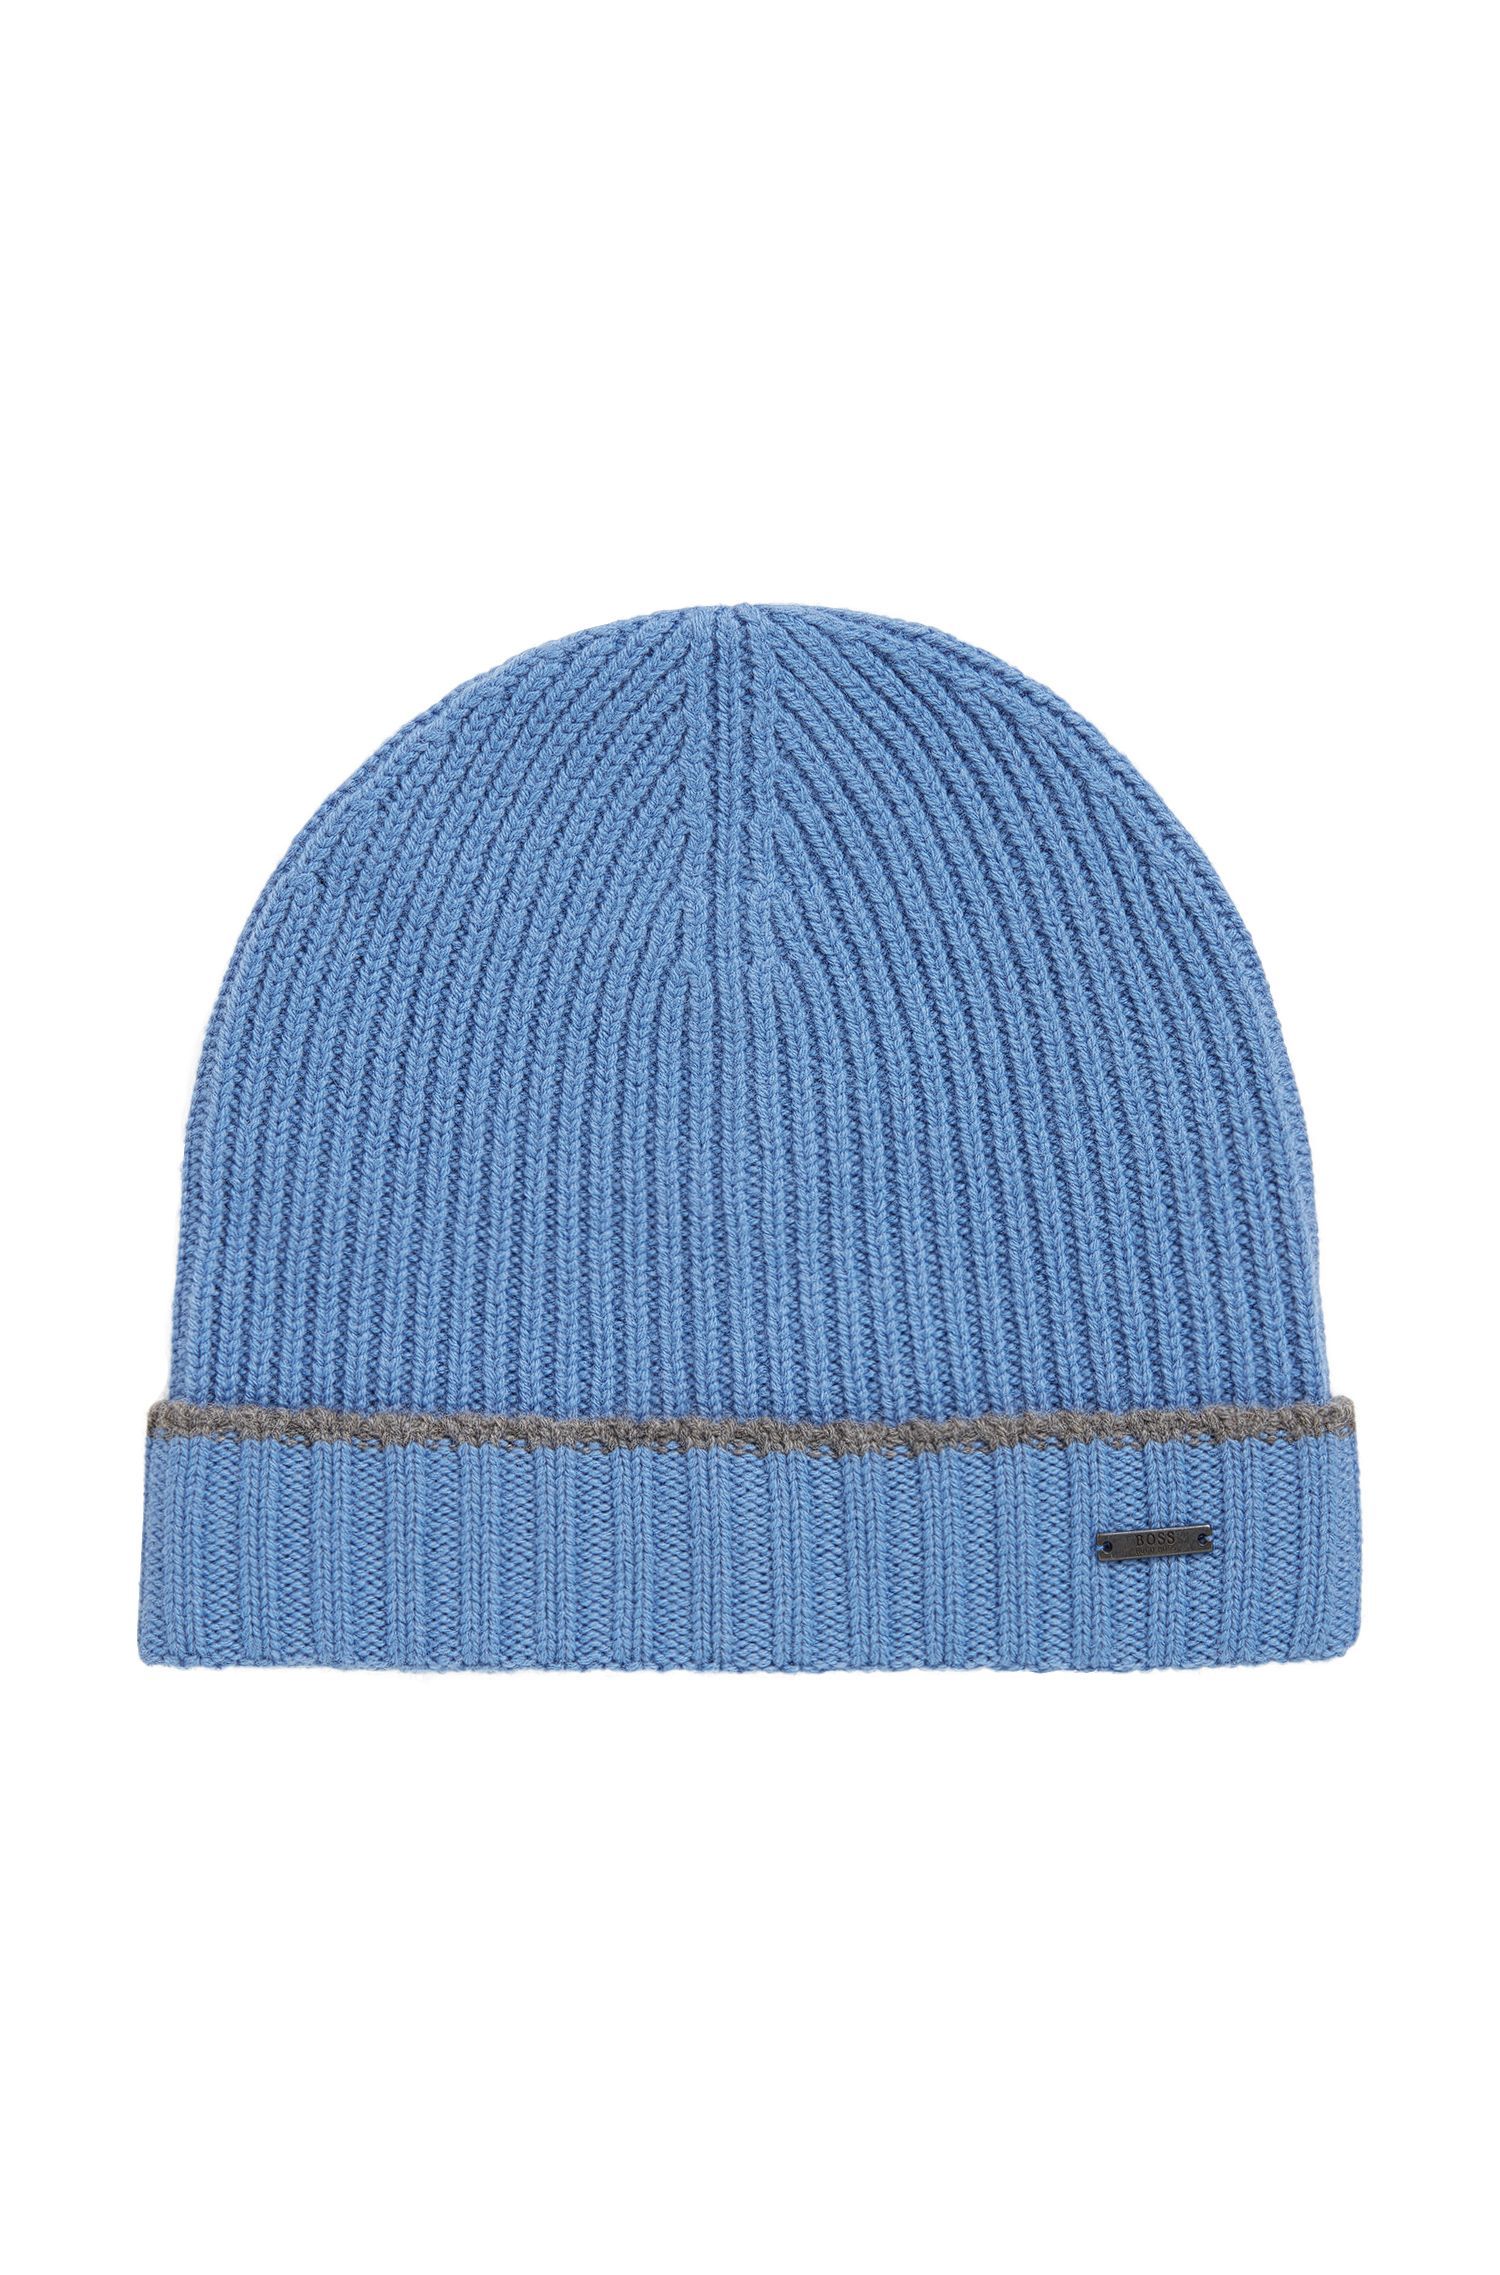 Knitted beanie hat in virgin wool